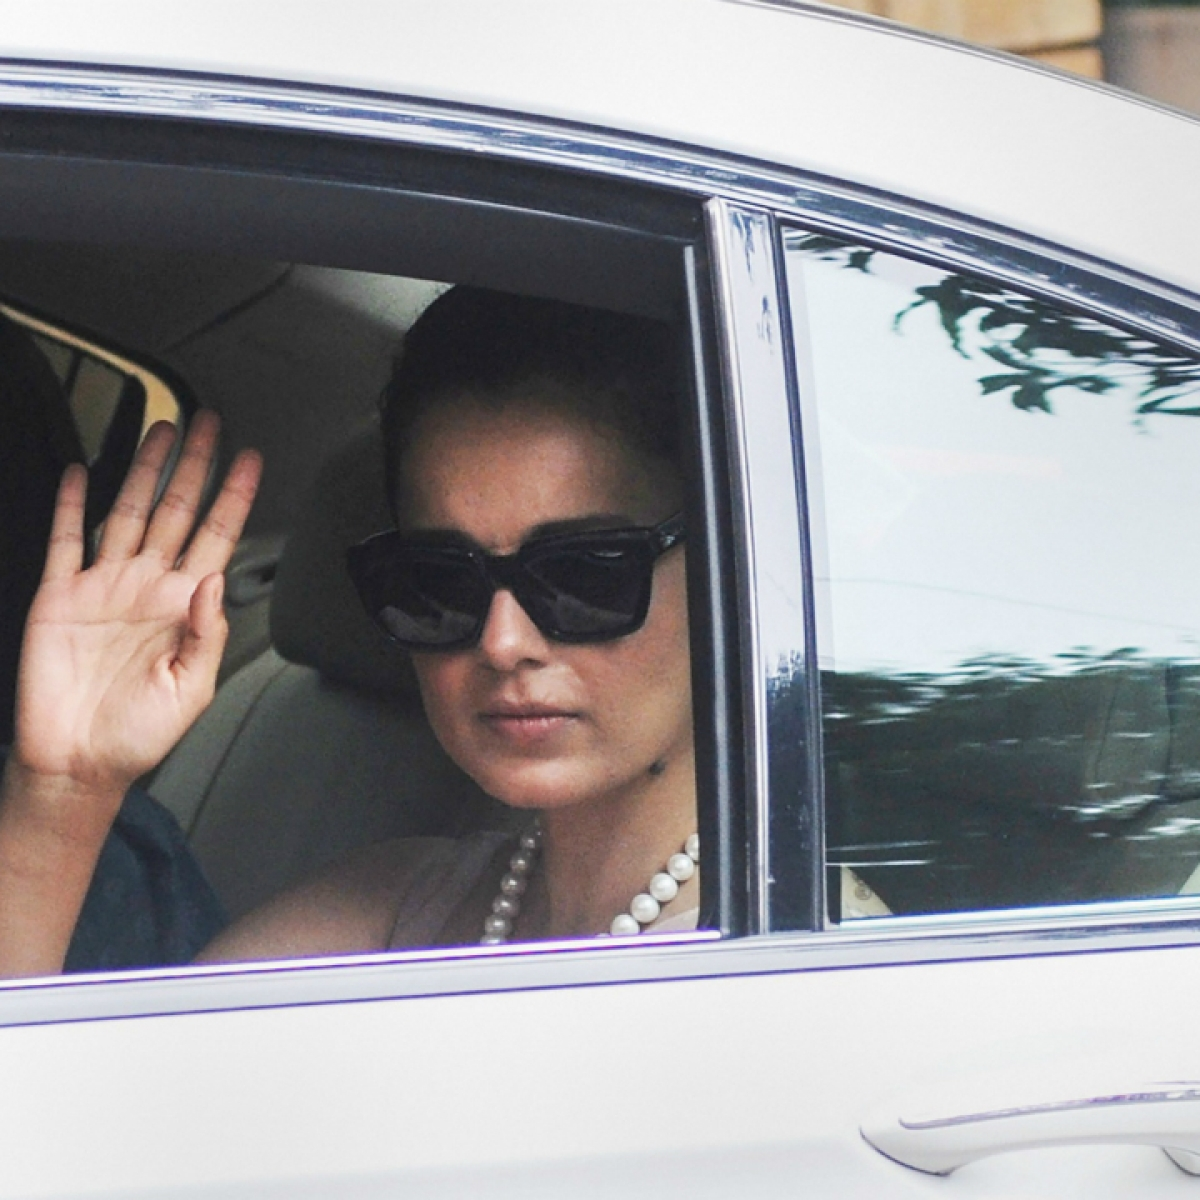 'Hope I get justice, so citizens' faith in the system is restored: Kangana With sister in tow, meets governor